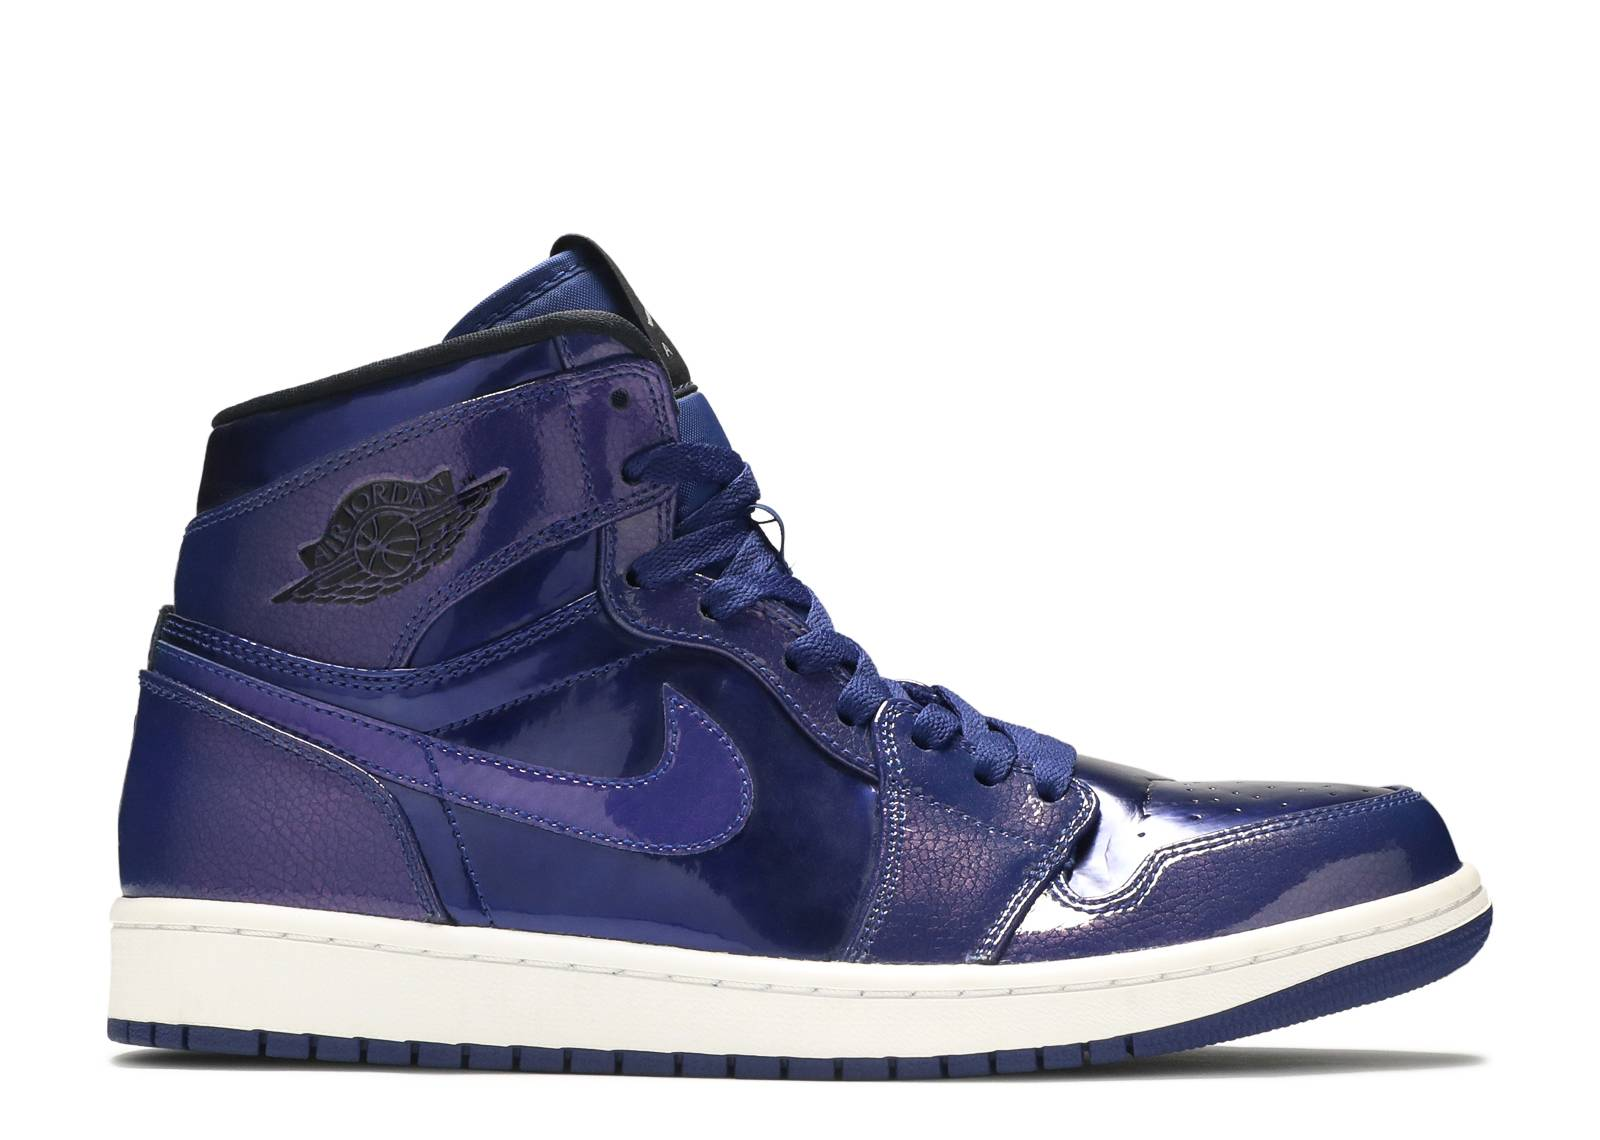 Air Jordan 1 Retro High - Air Jordan - 332550 420 - deep royal black ... f7a82c71c